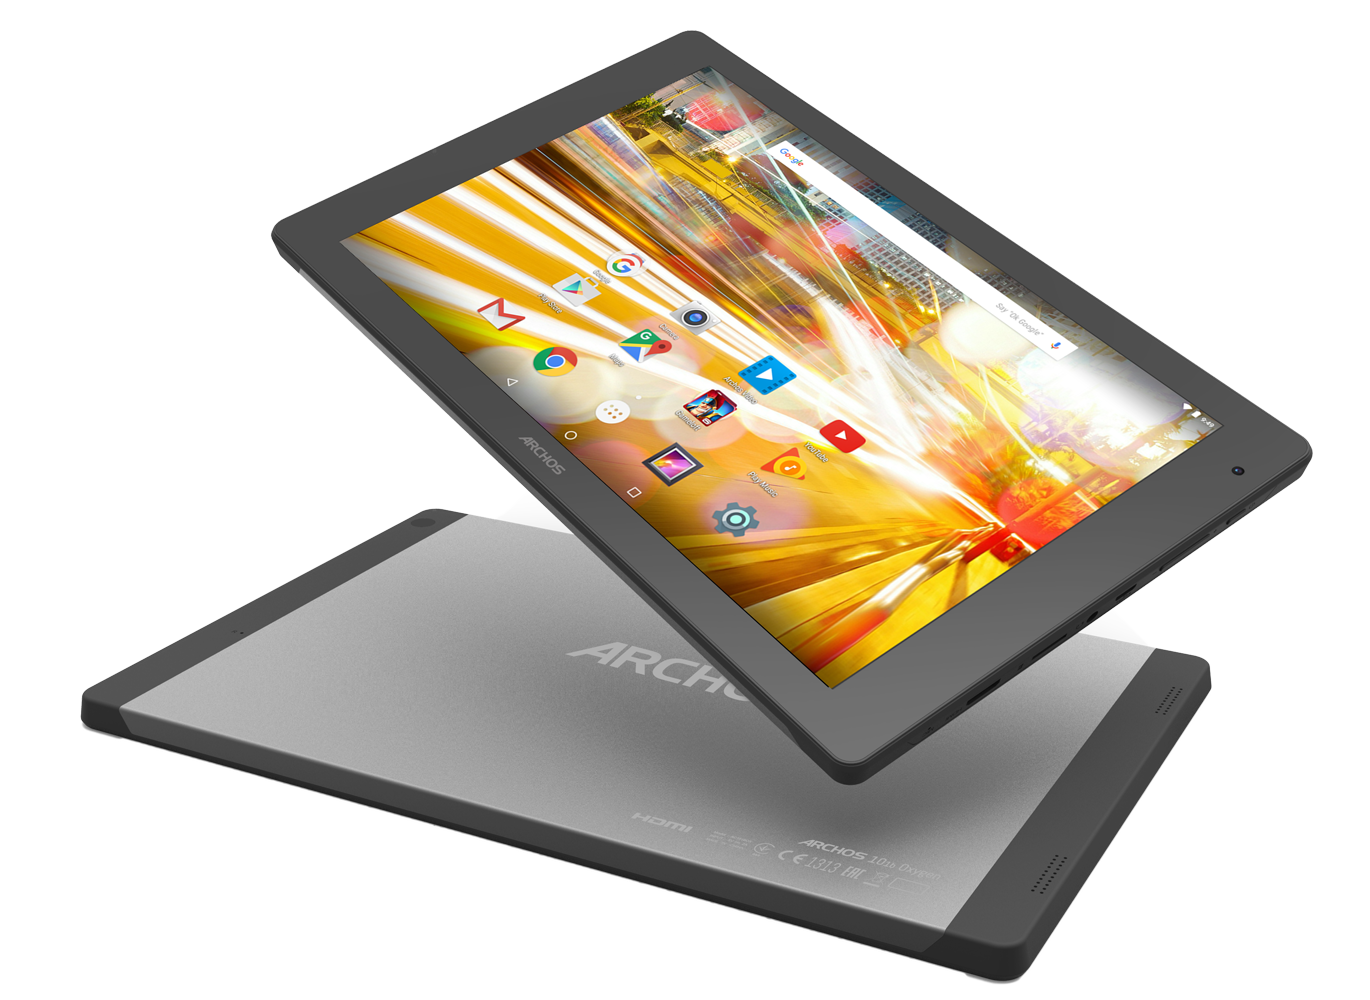 http://www.archos.com/img/products/tablets/oxygen/archos_101boxygen/gallery/archos_101boxygen-large_05.png